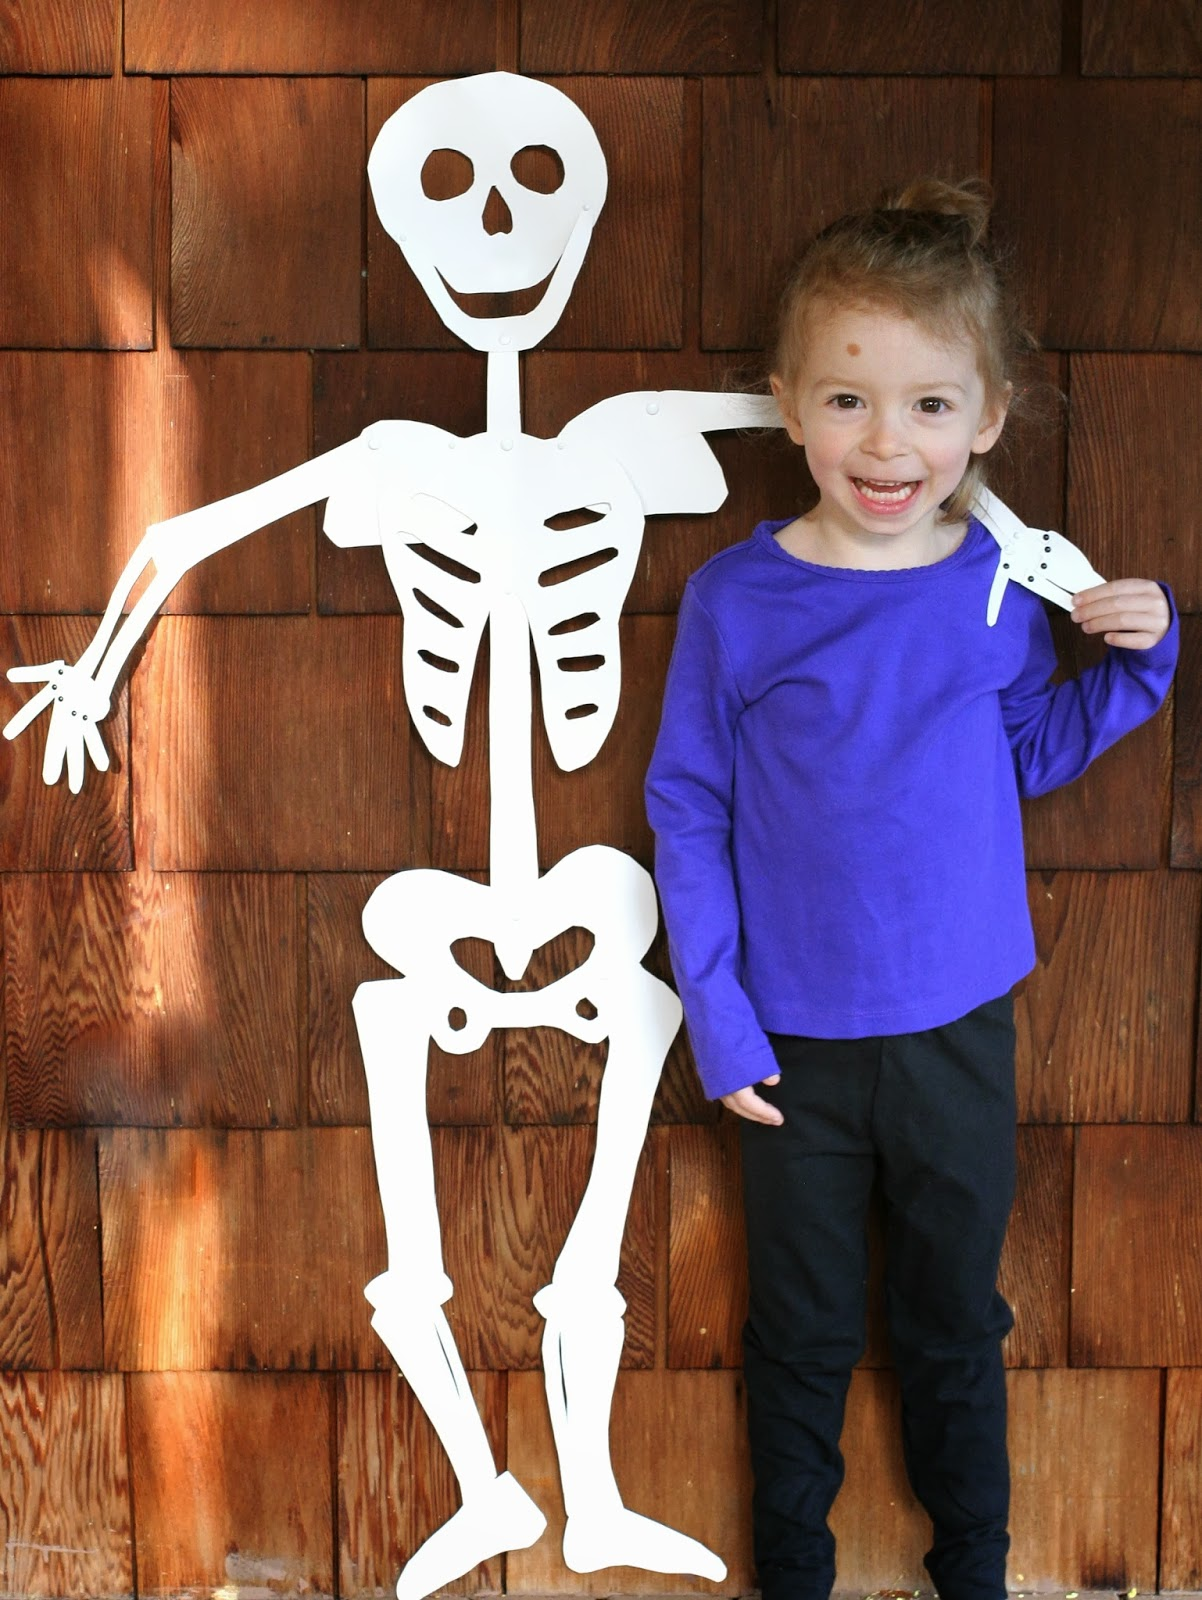 Diy halloween skull decorations - Diy Halloween Decoration Life Sized Skeleton From Fun At Home With Kids